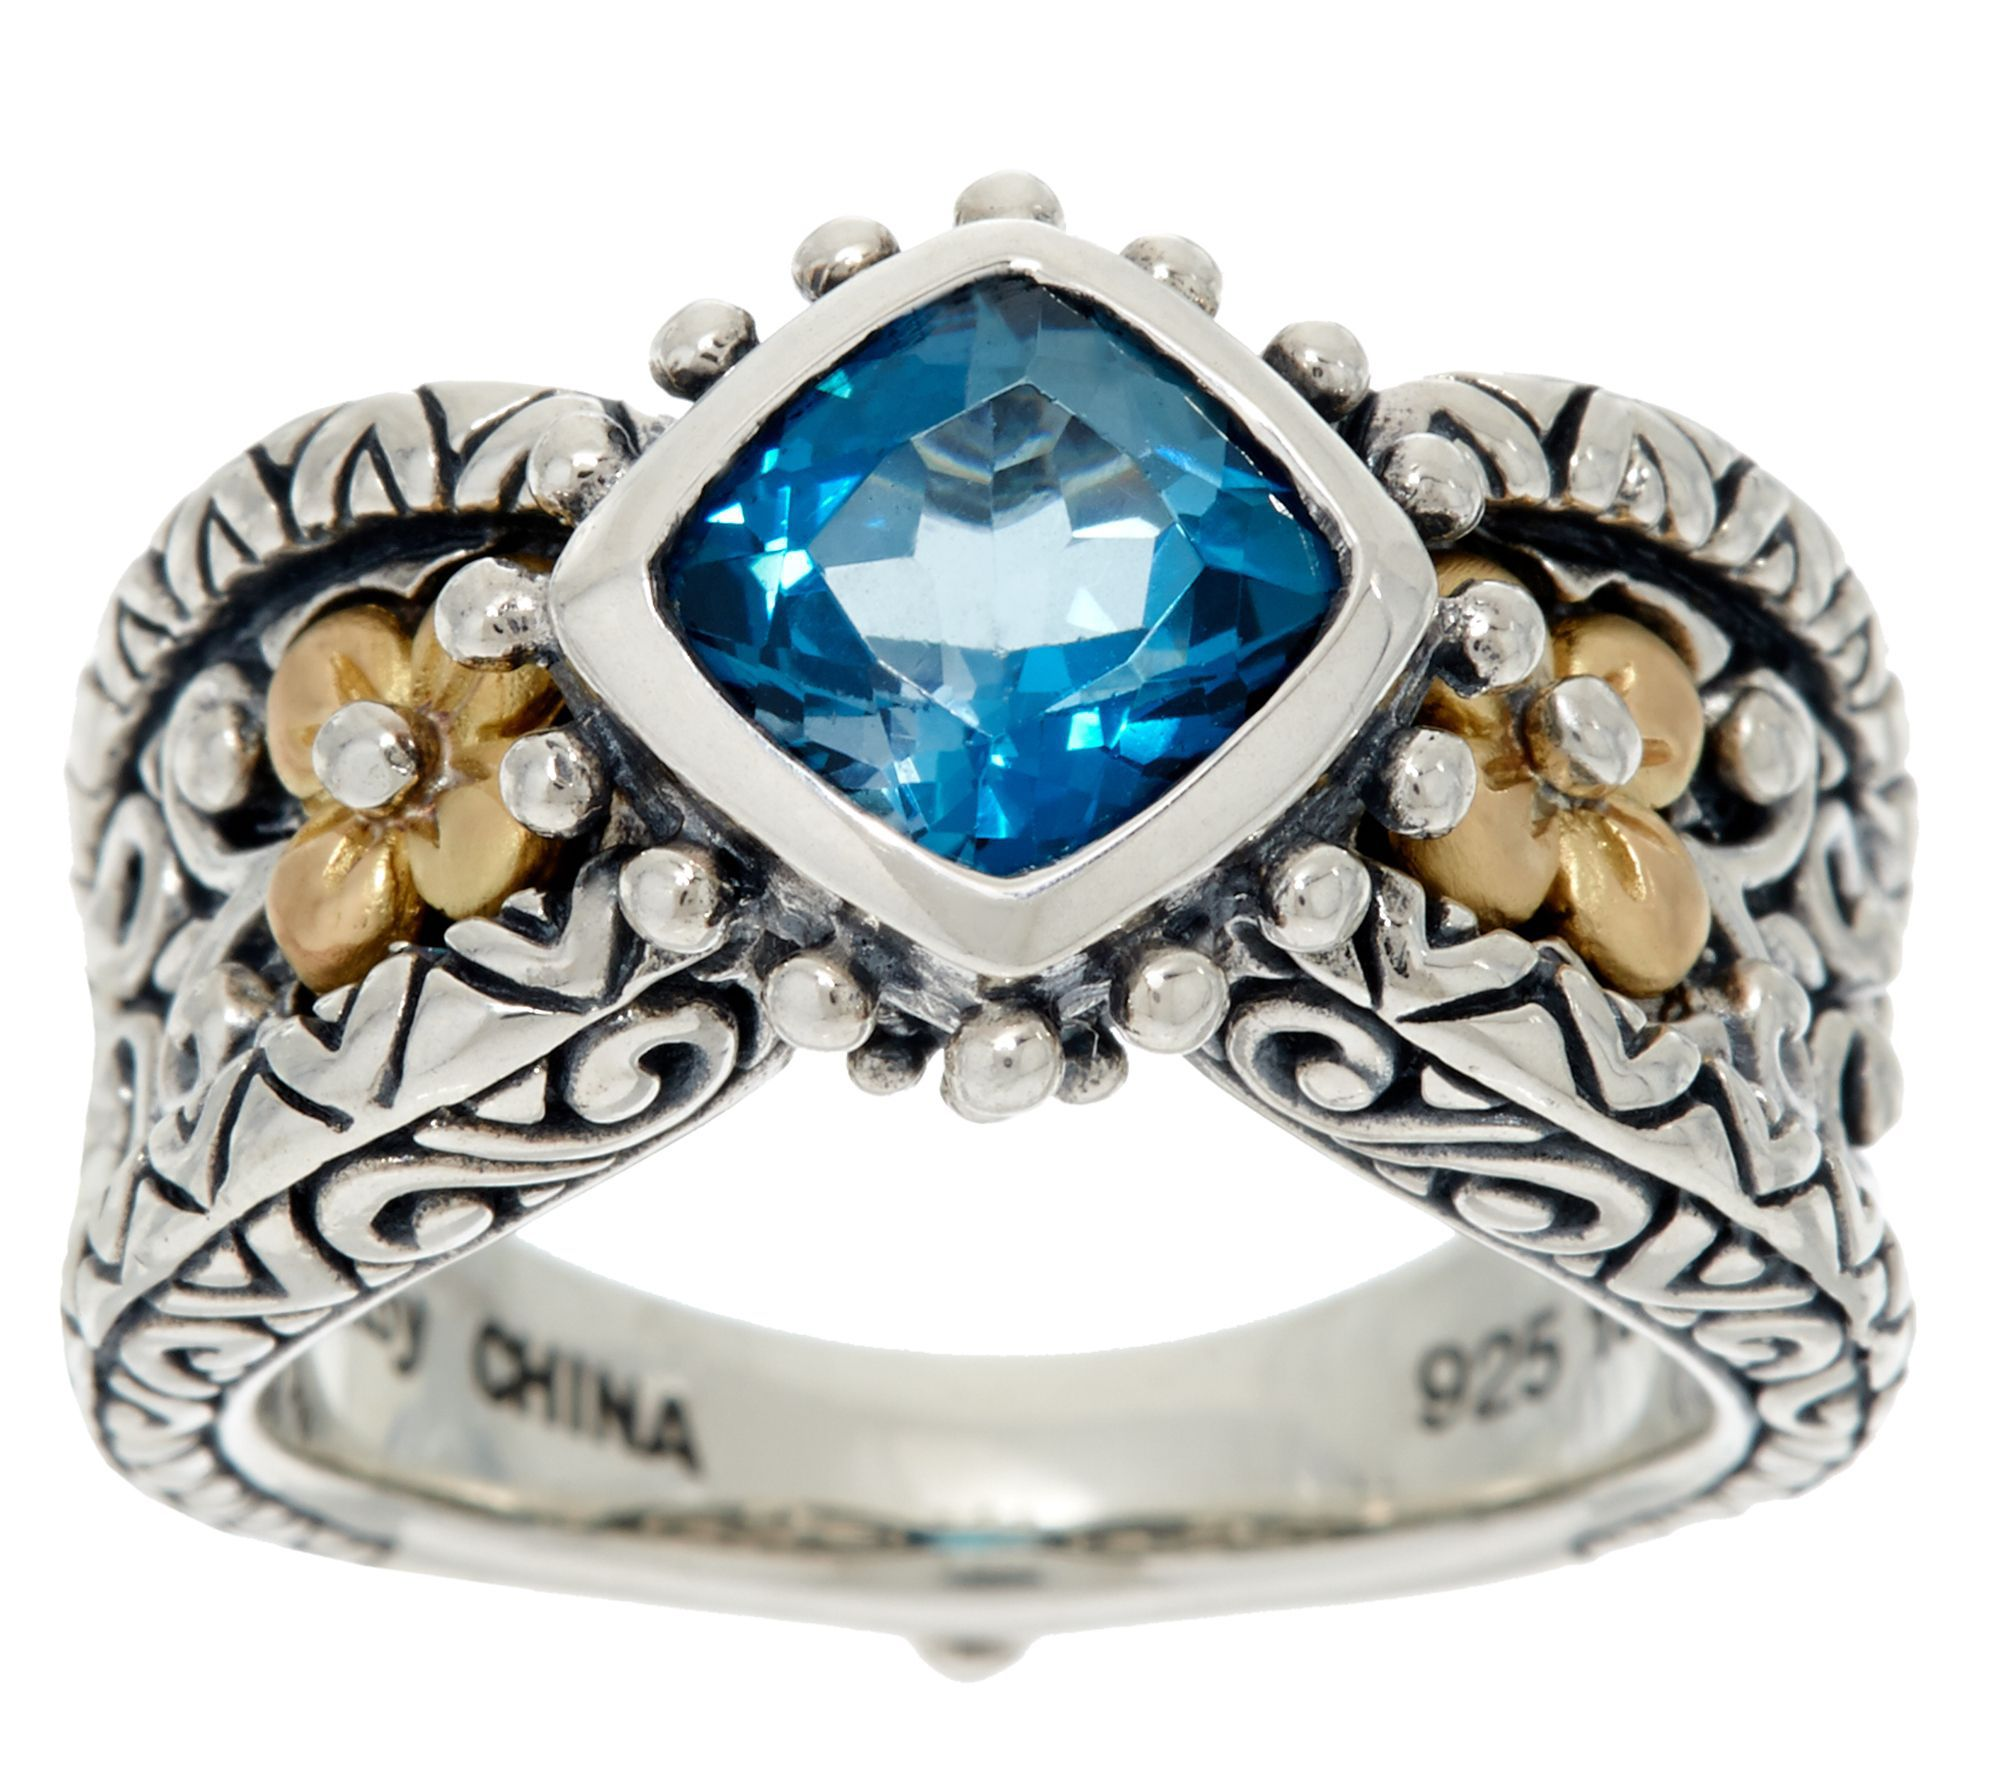 Barbara Bixby Sterling & 18K 1.30 ct London Blue Topaz Ring